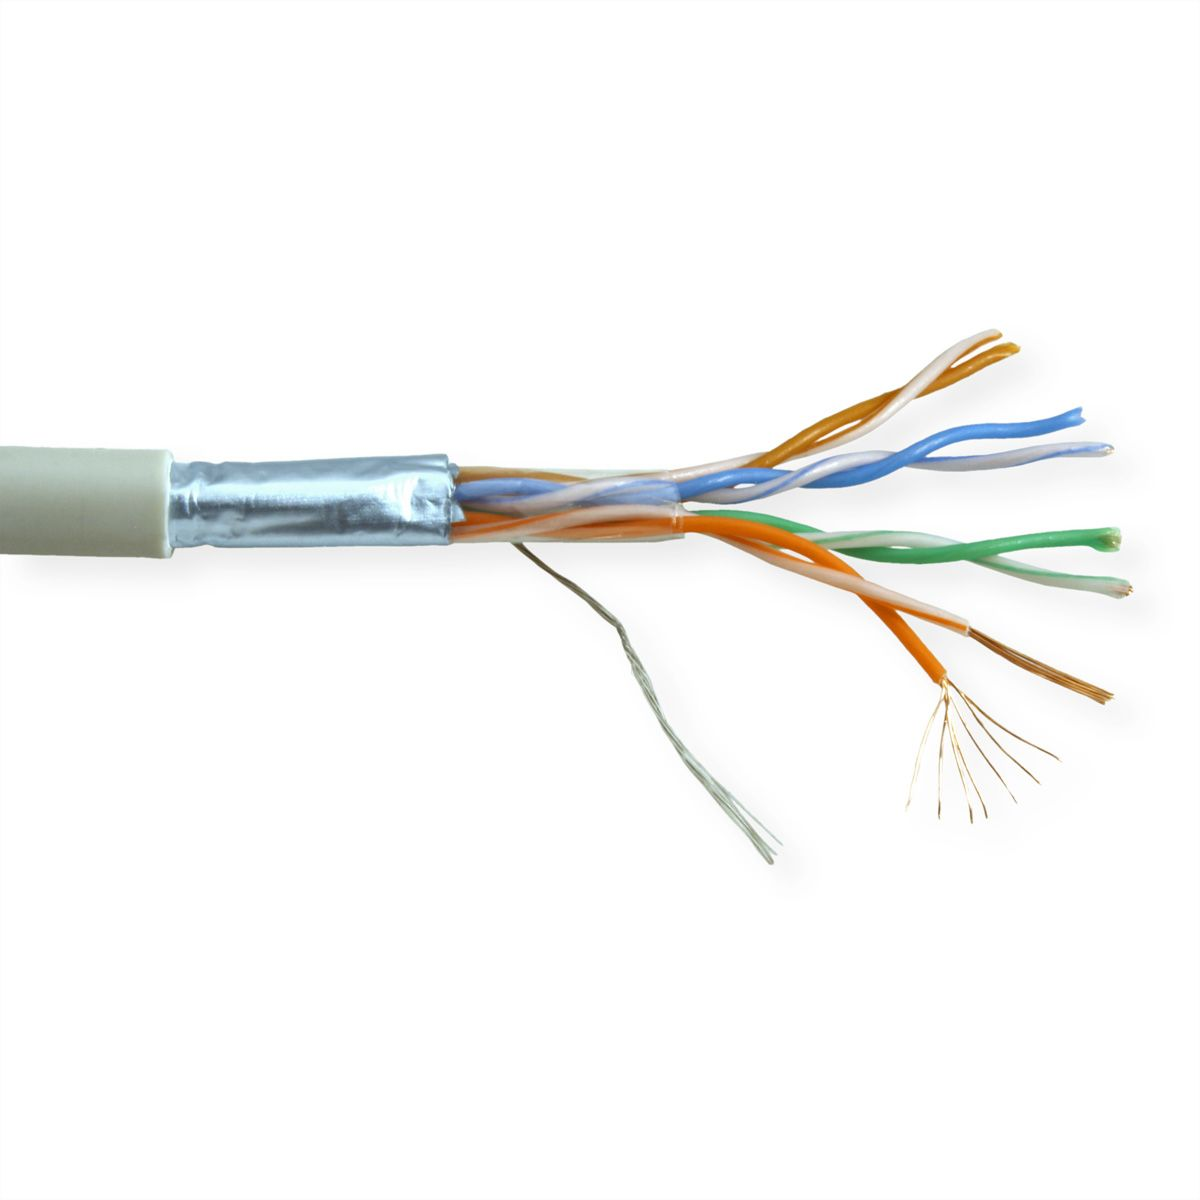 Roline Ftp Cable Cat5e Stranded Wire 300 M Secomp International Cat 5e Wiring